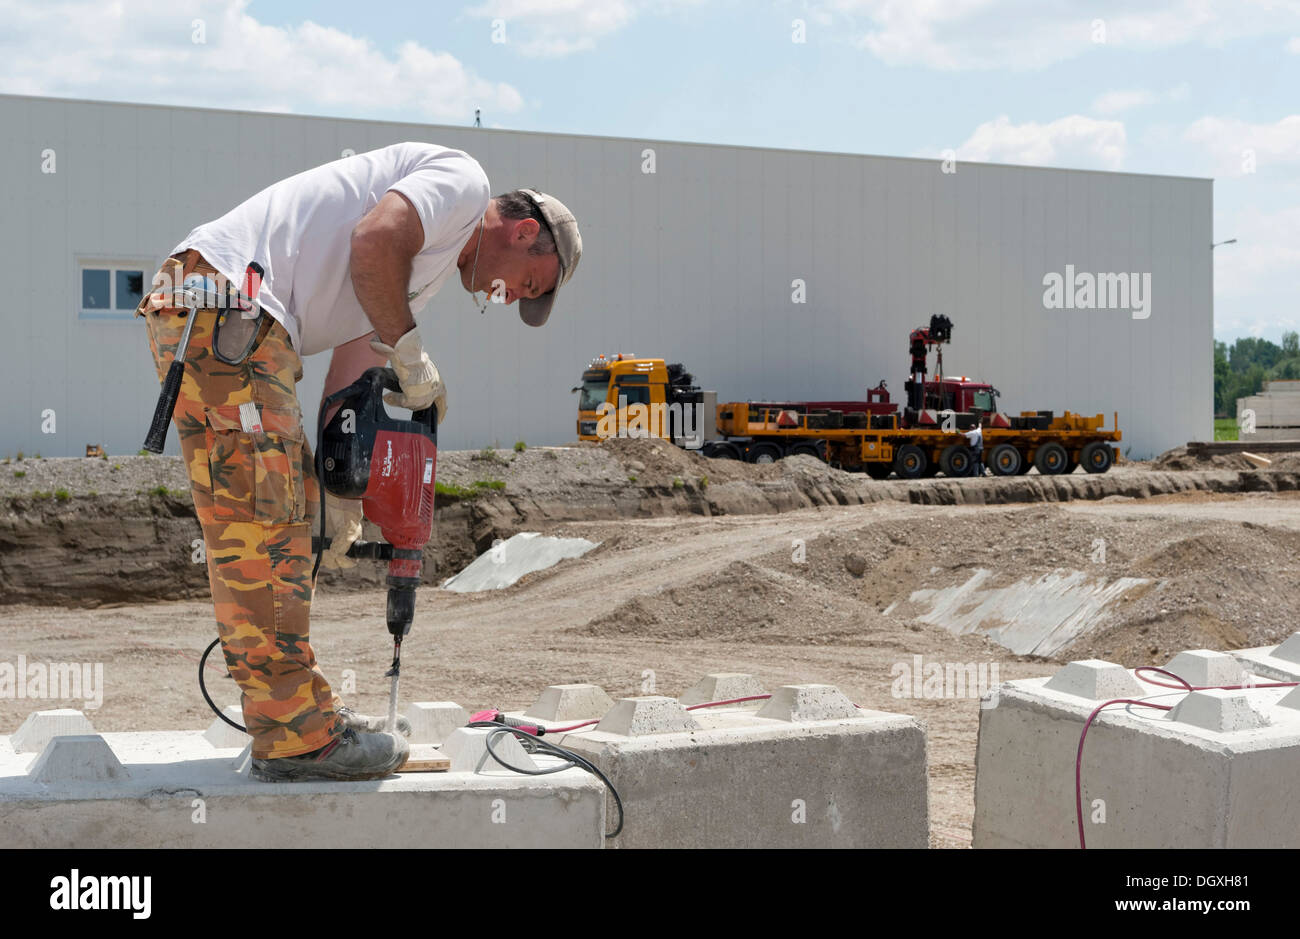 Construction worker drilling holes into stone blocks that ...  Construction wo...